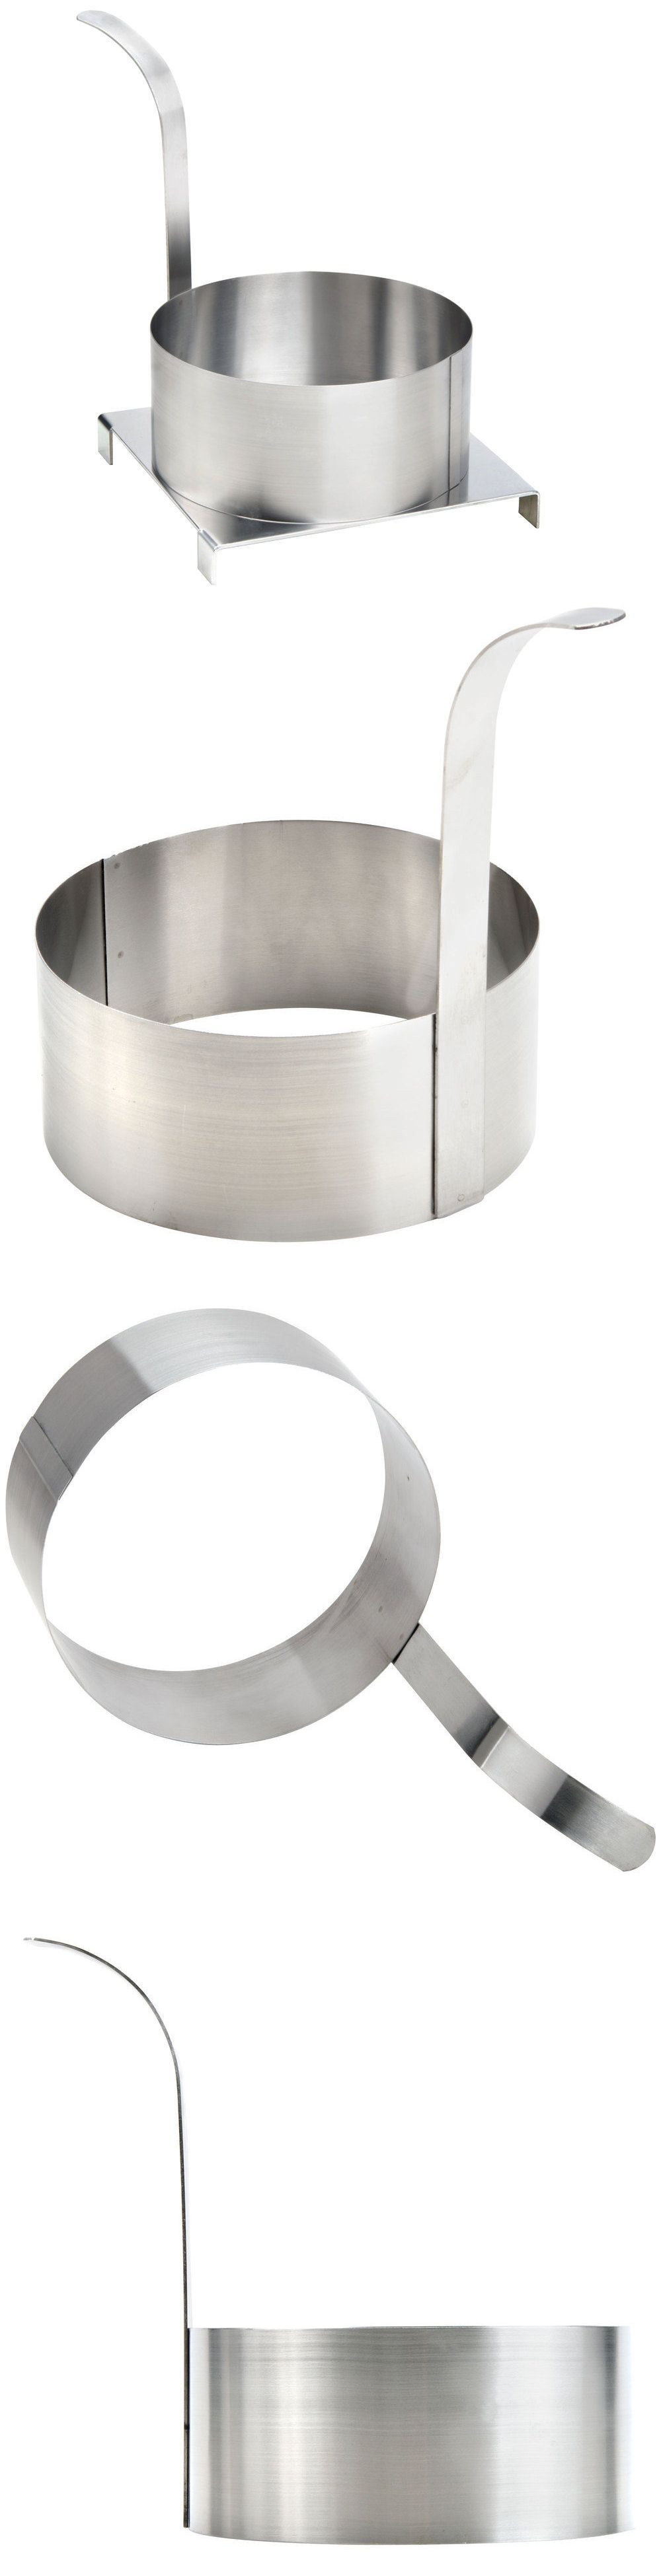 Fryers 185033 8 stainless steel round funnel cake mold